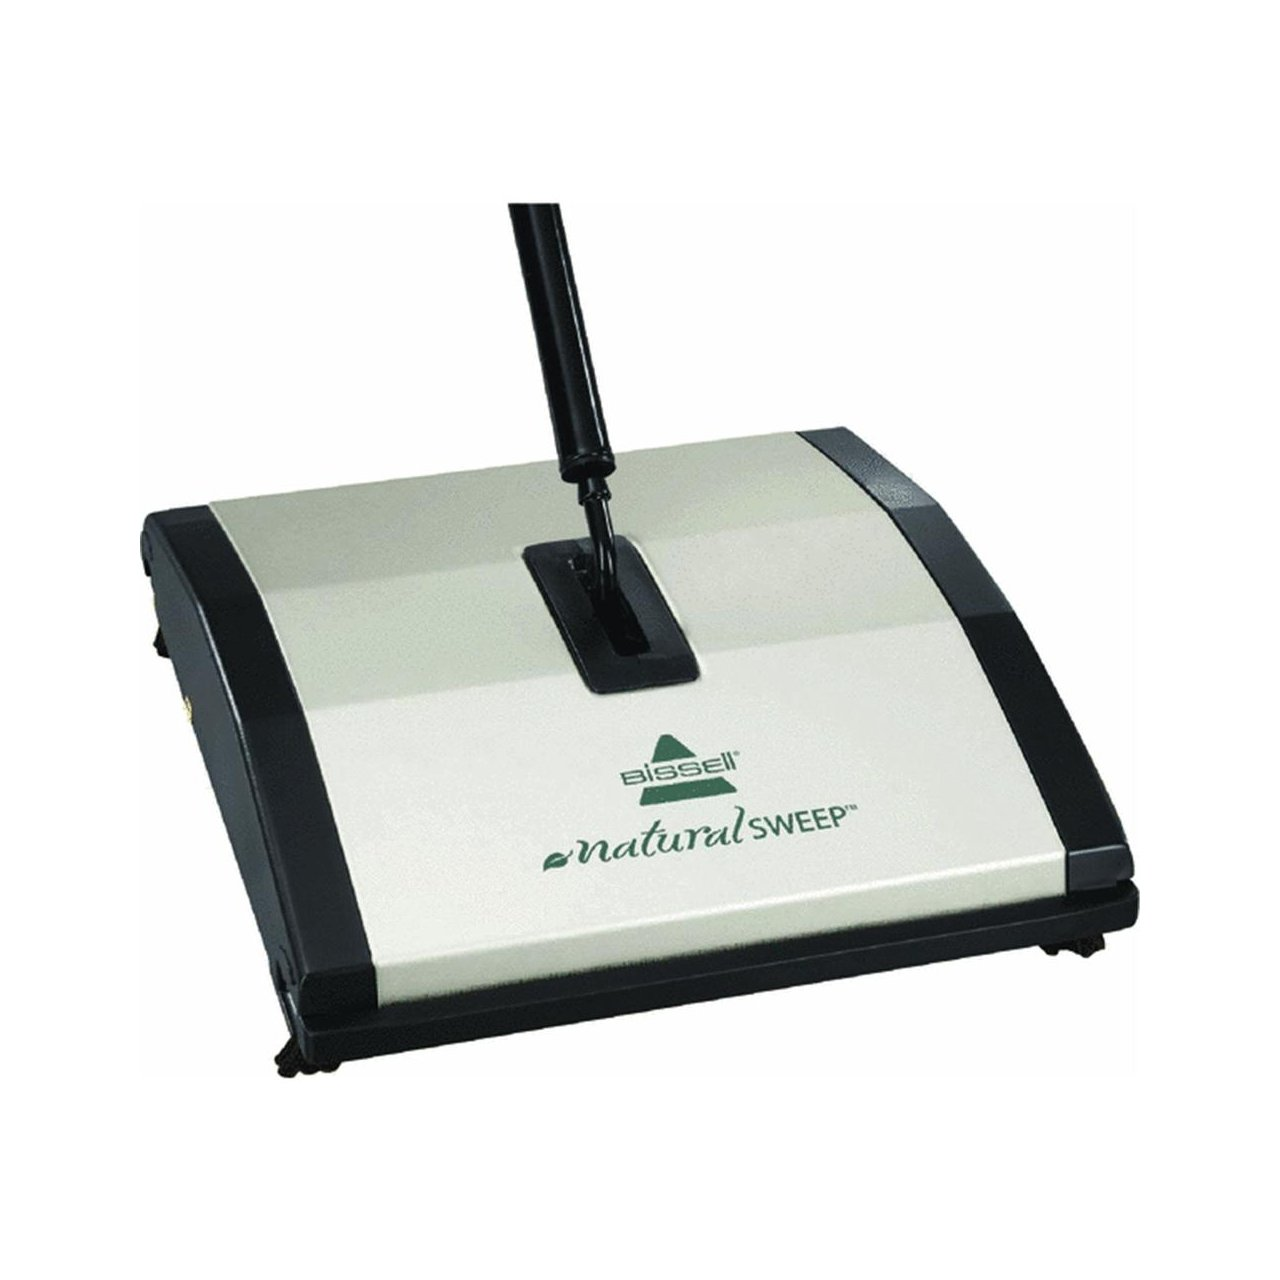 The Facts About Carpet Sweeper